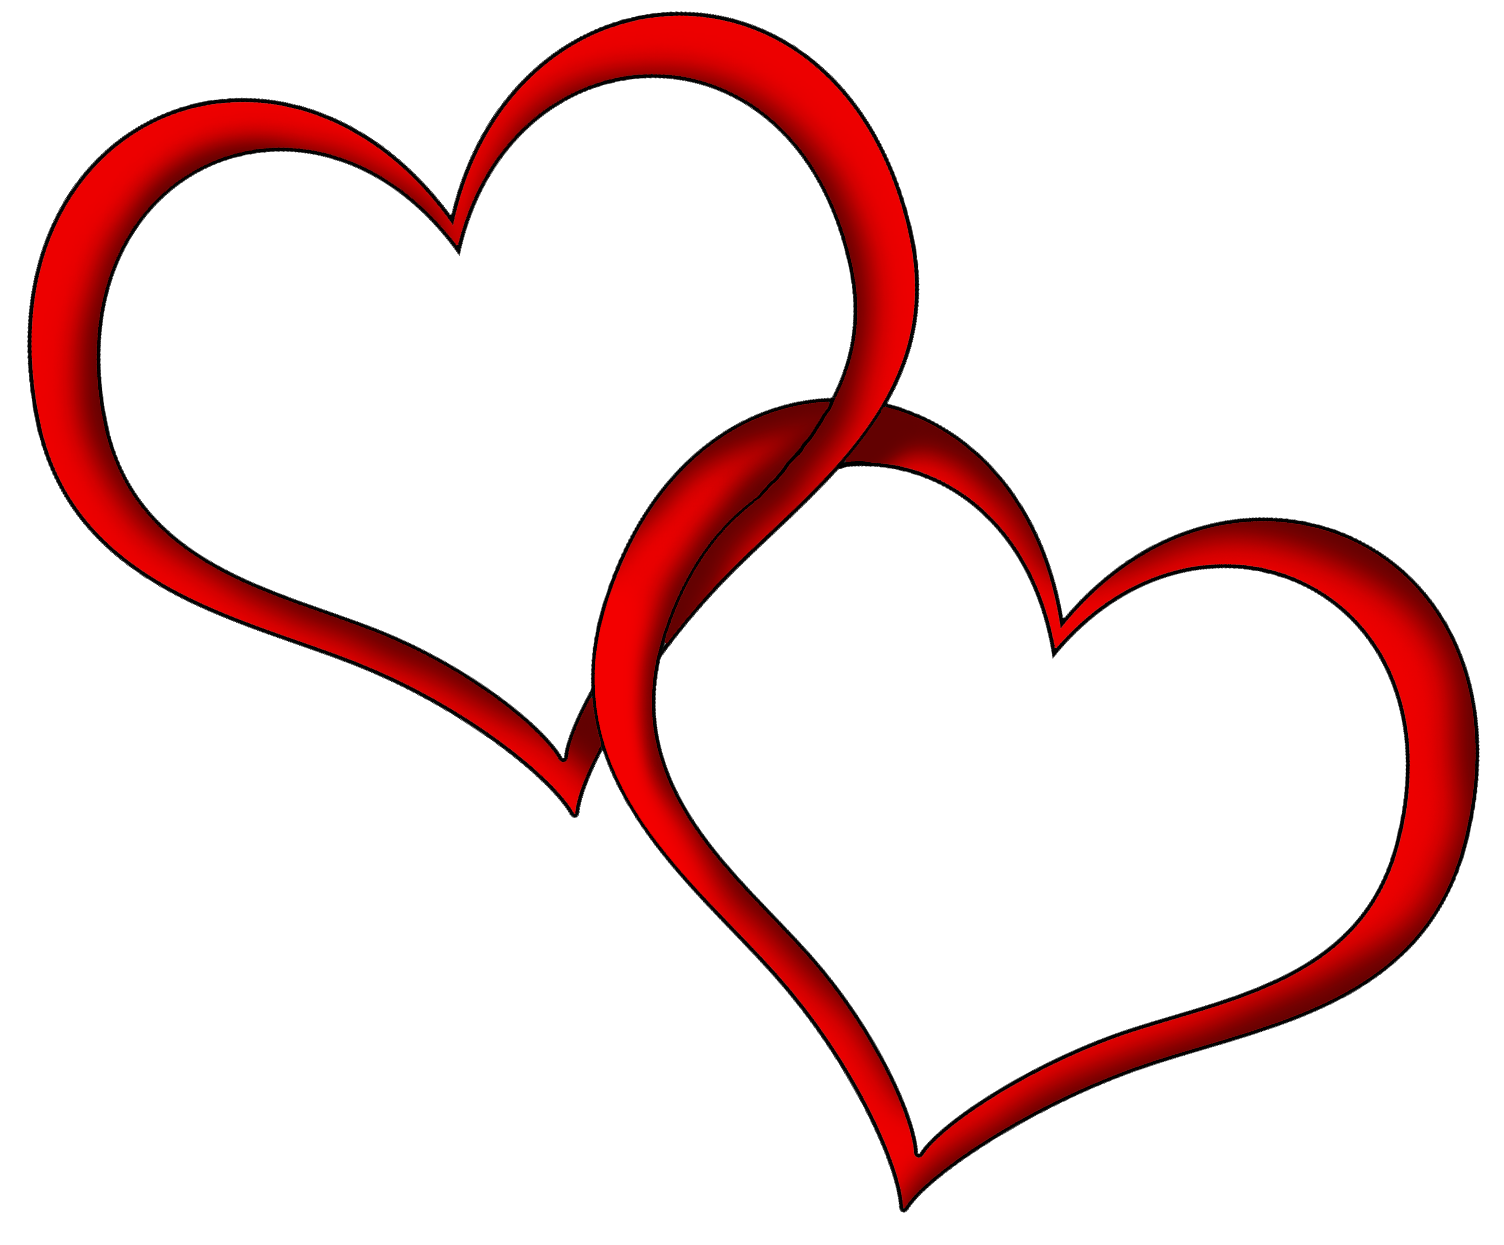 Free Hearts Cliparts, Download Free Clip Art, Free Clip Art.